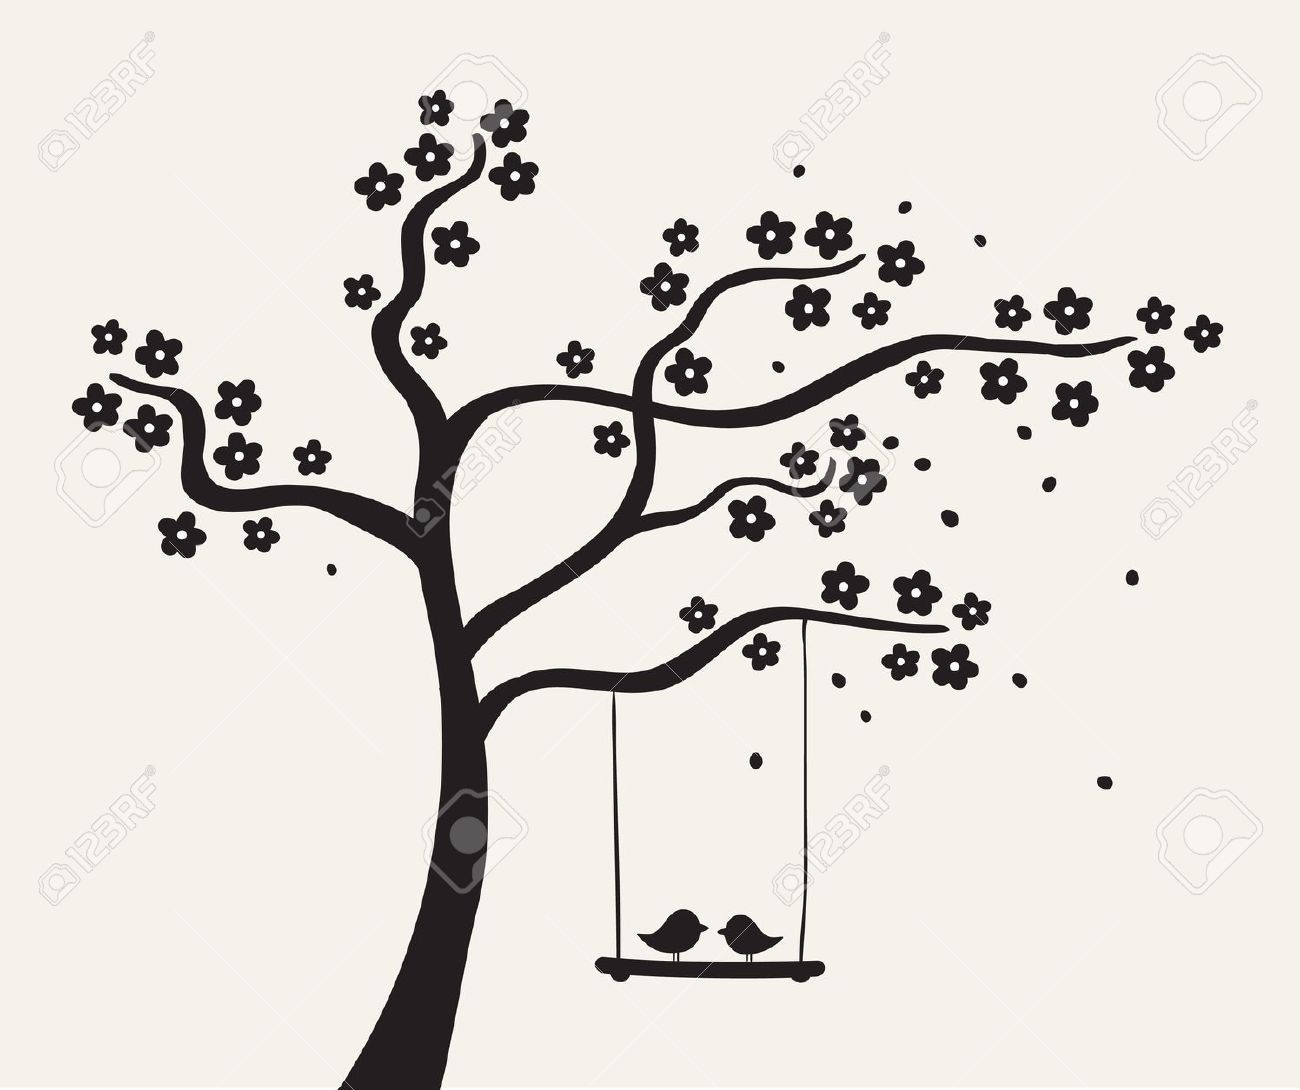 Tree with swing clipart silhouette image Stock Vector | illustration | Silhouette vector, Tree ... image